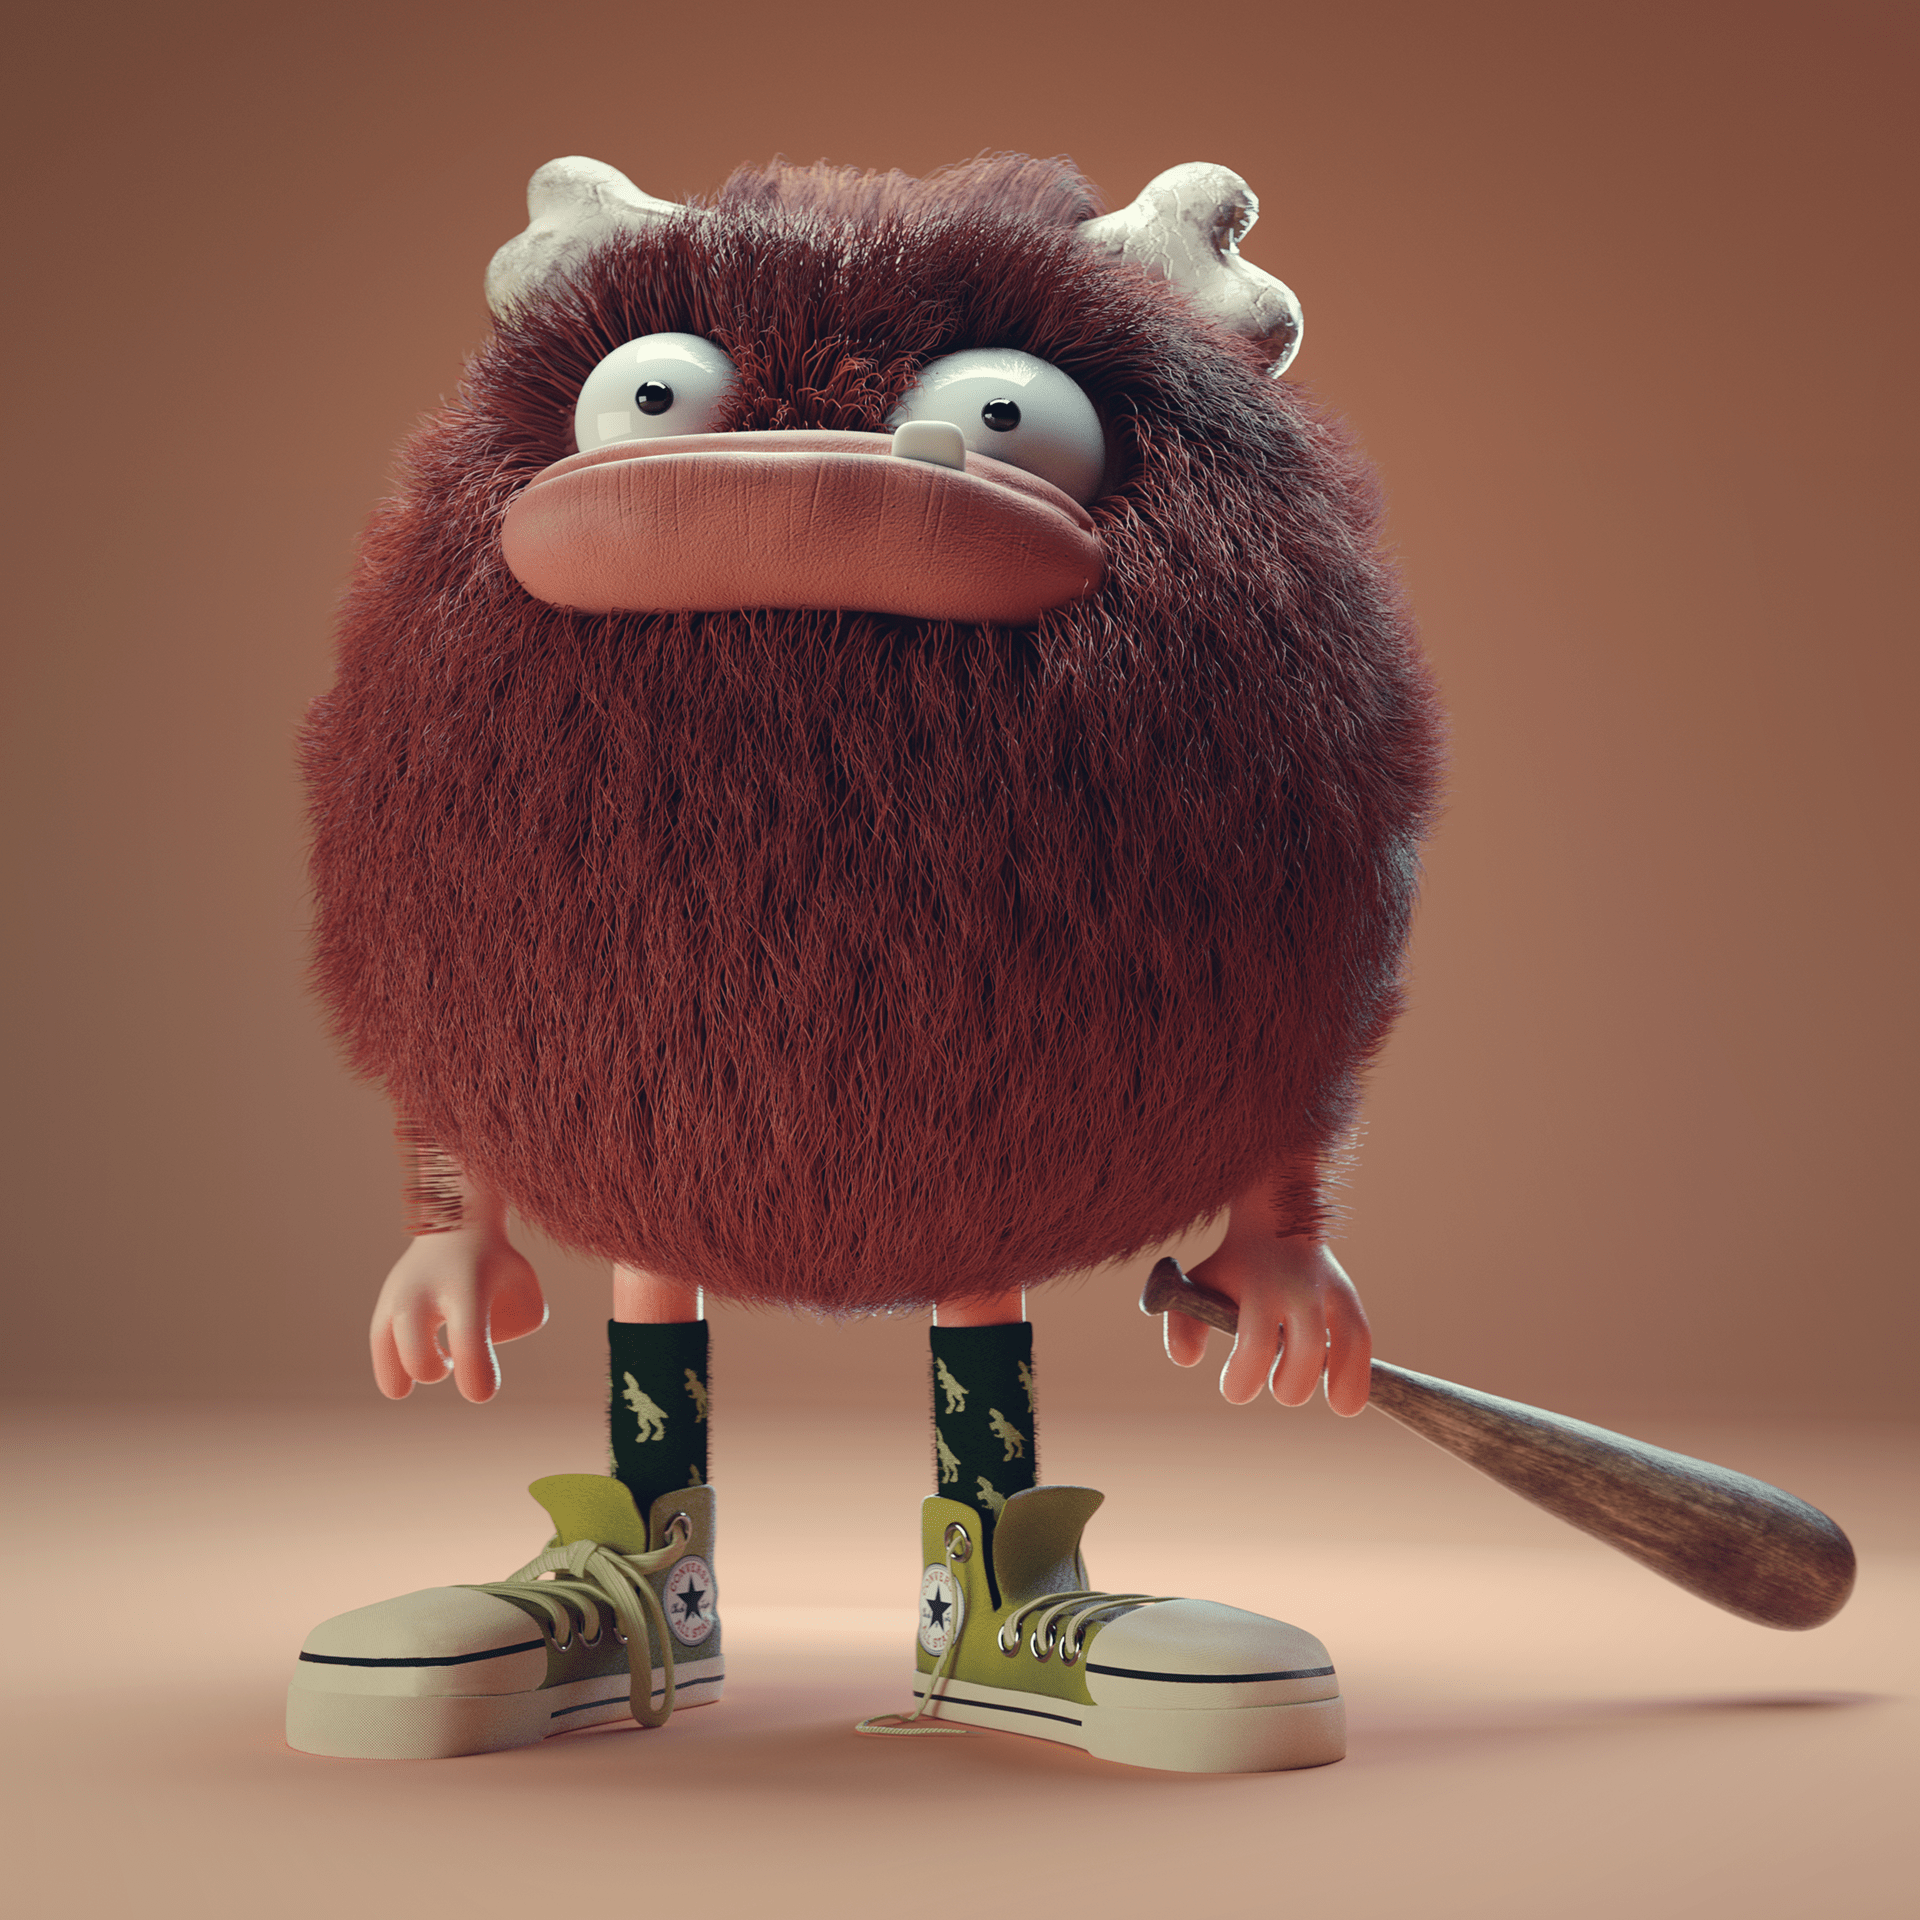 Character Design,Art Direction,Creative Direction